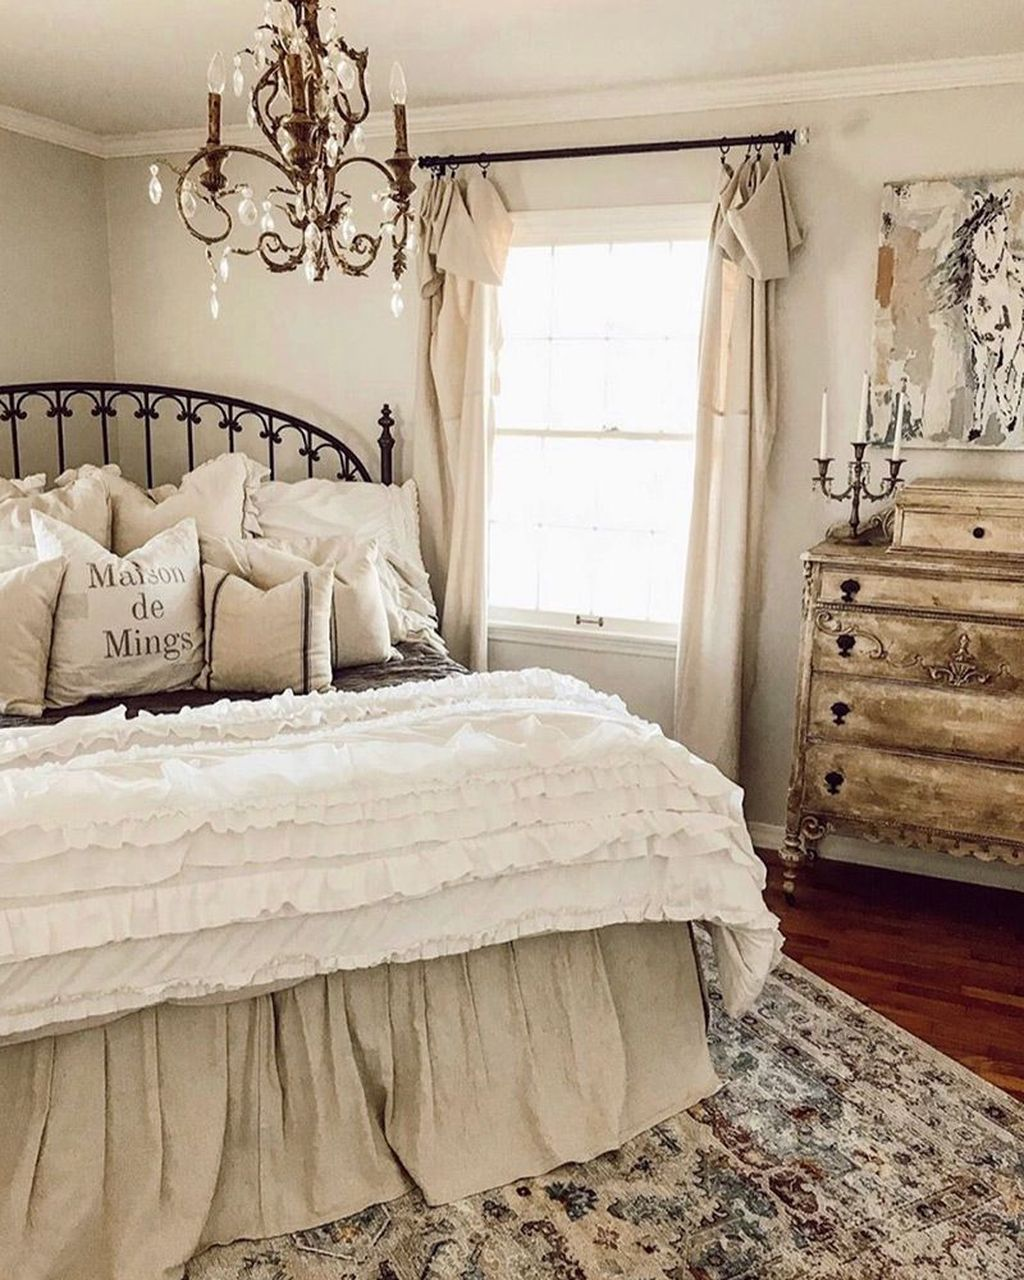 Stunning French Bedroom Decor Ideas That Will Inspire You 25